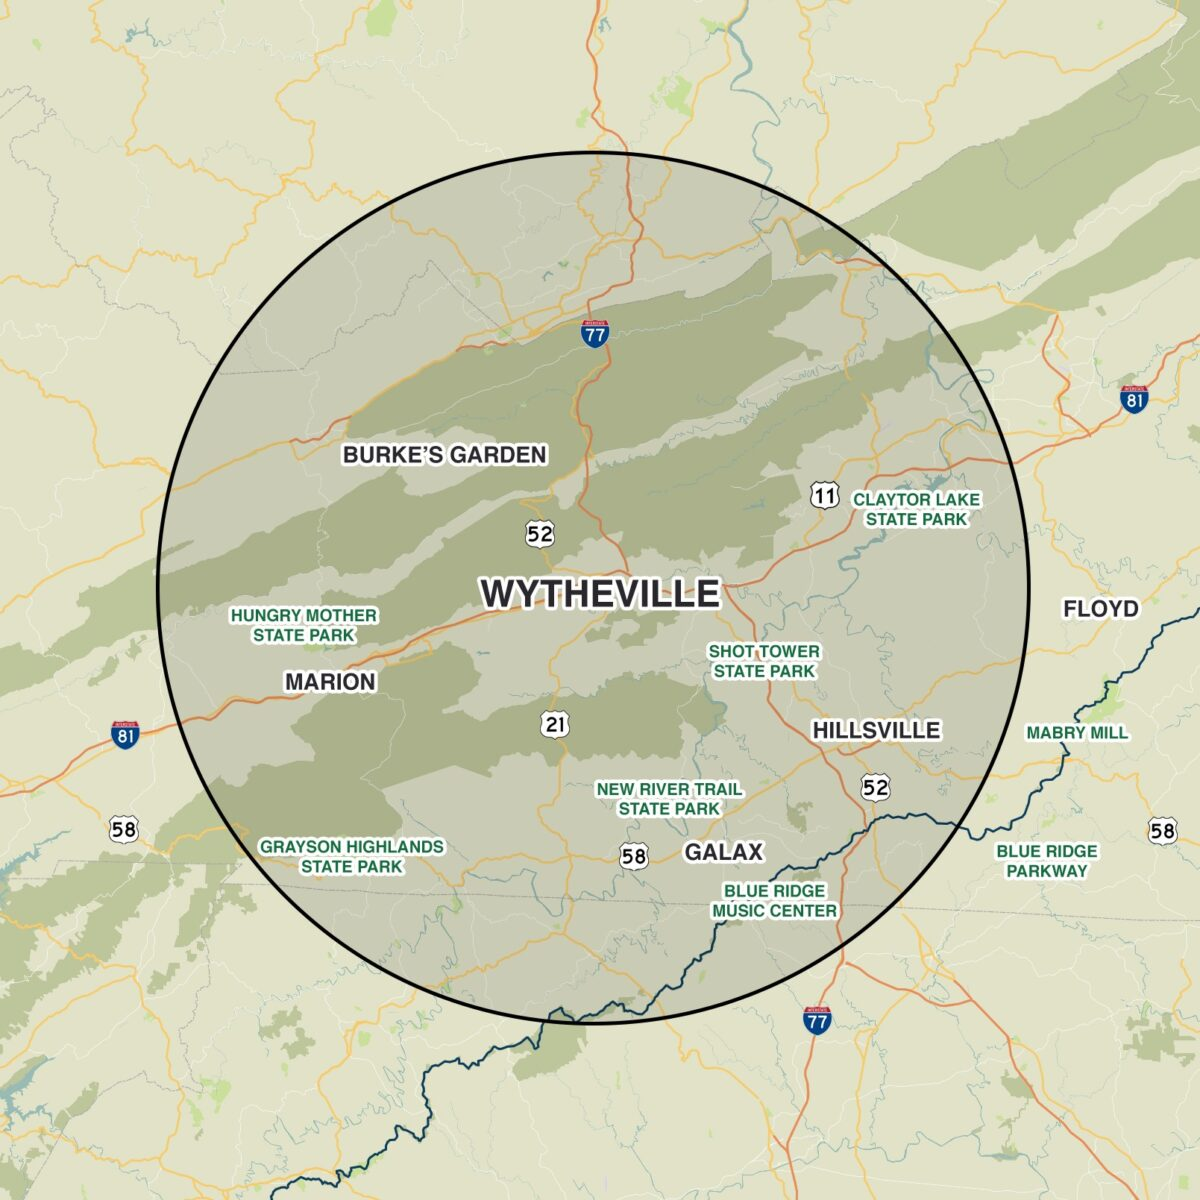 Outdoor recreation and tourism map for Wytheville, Virginia